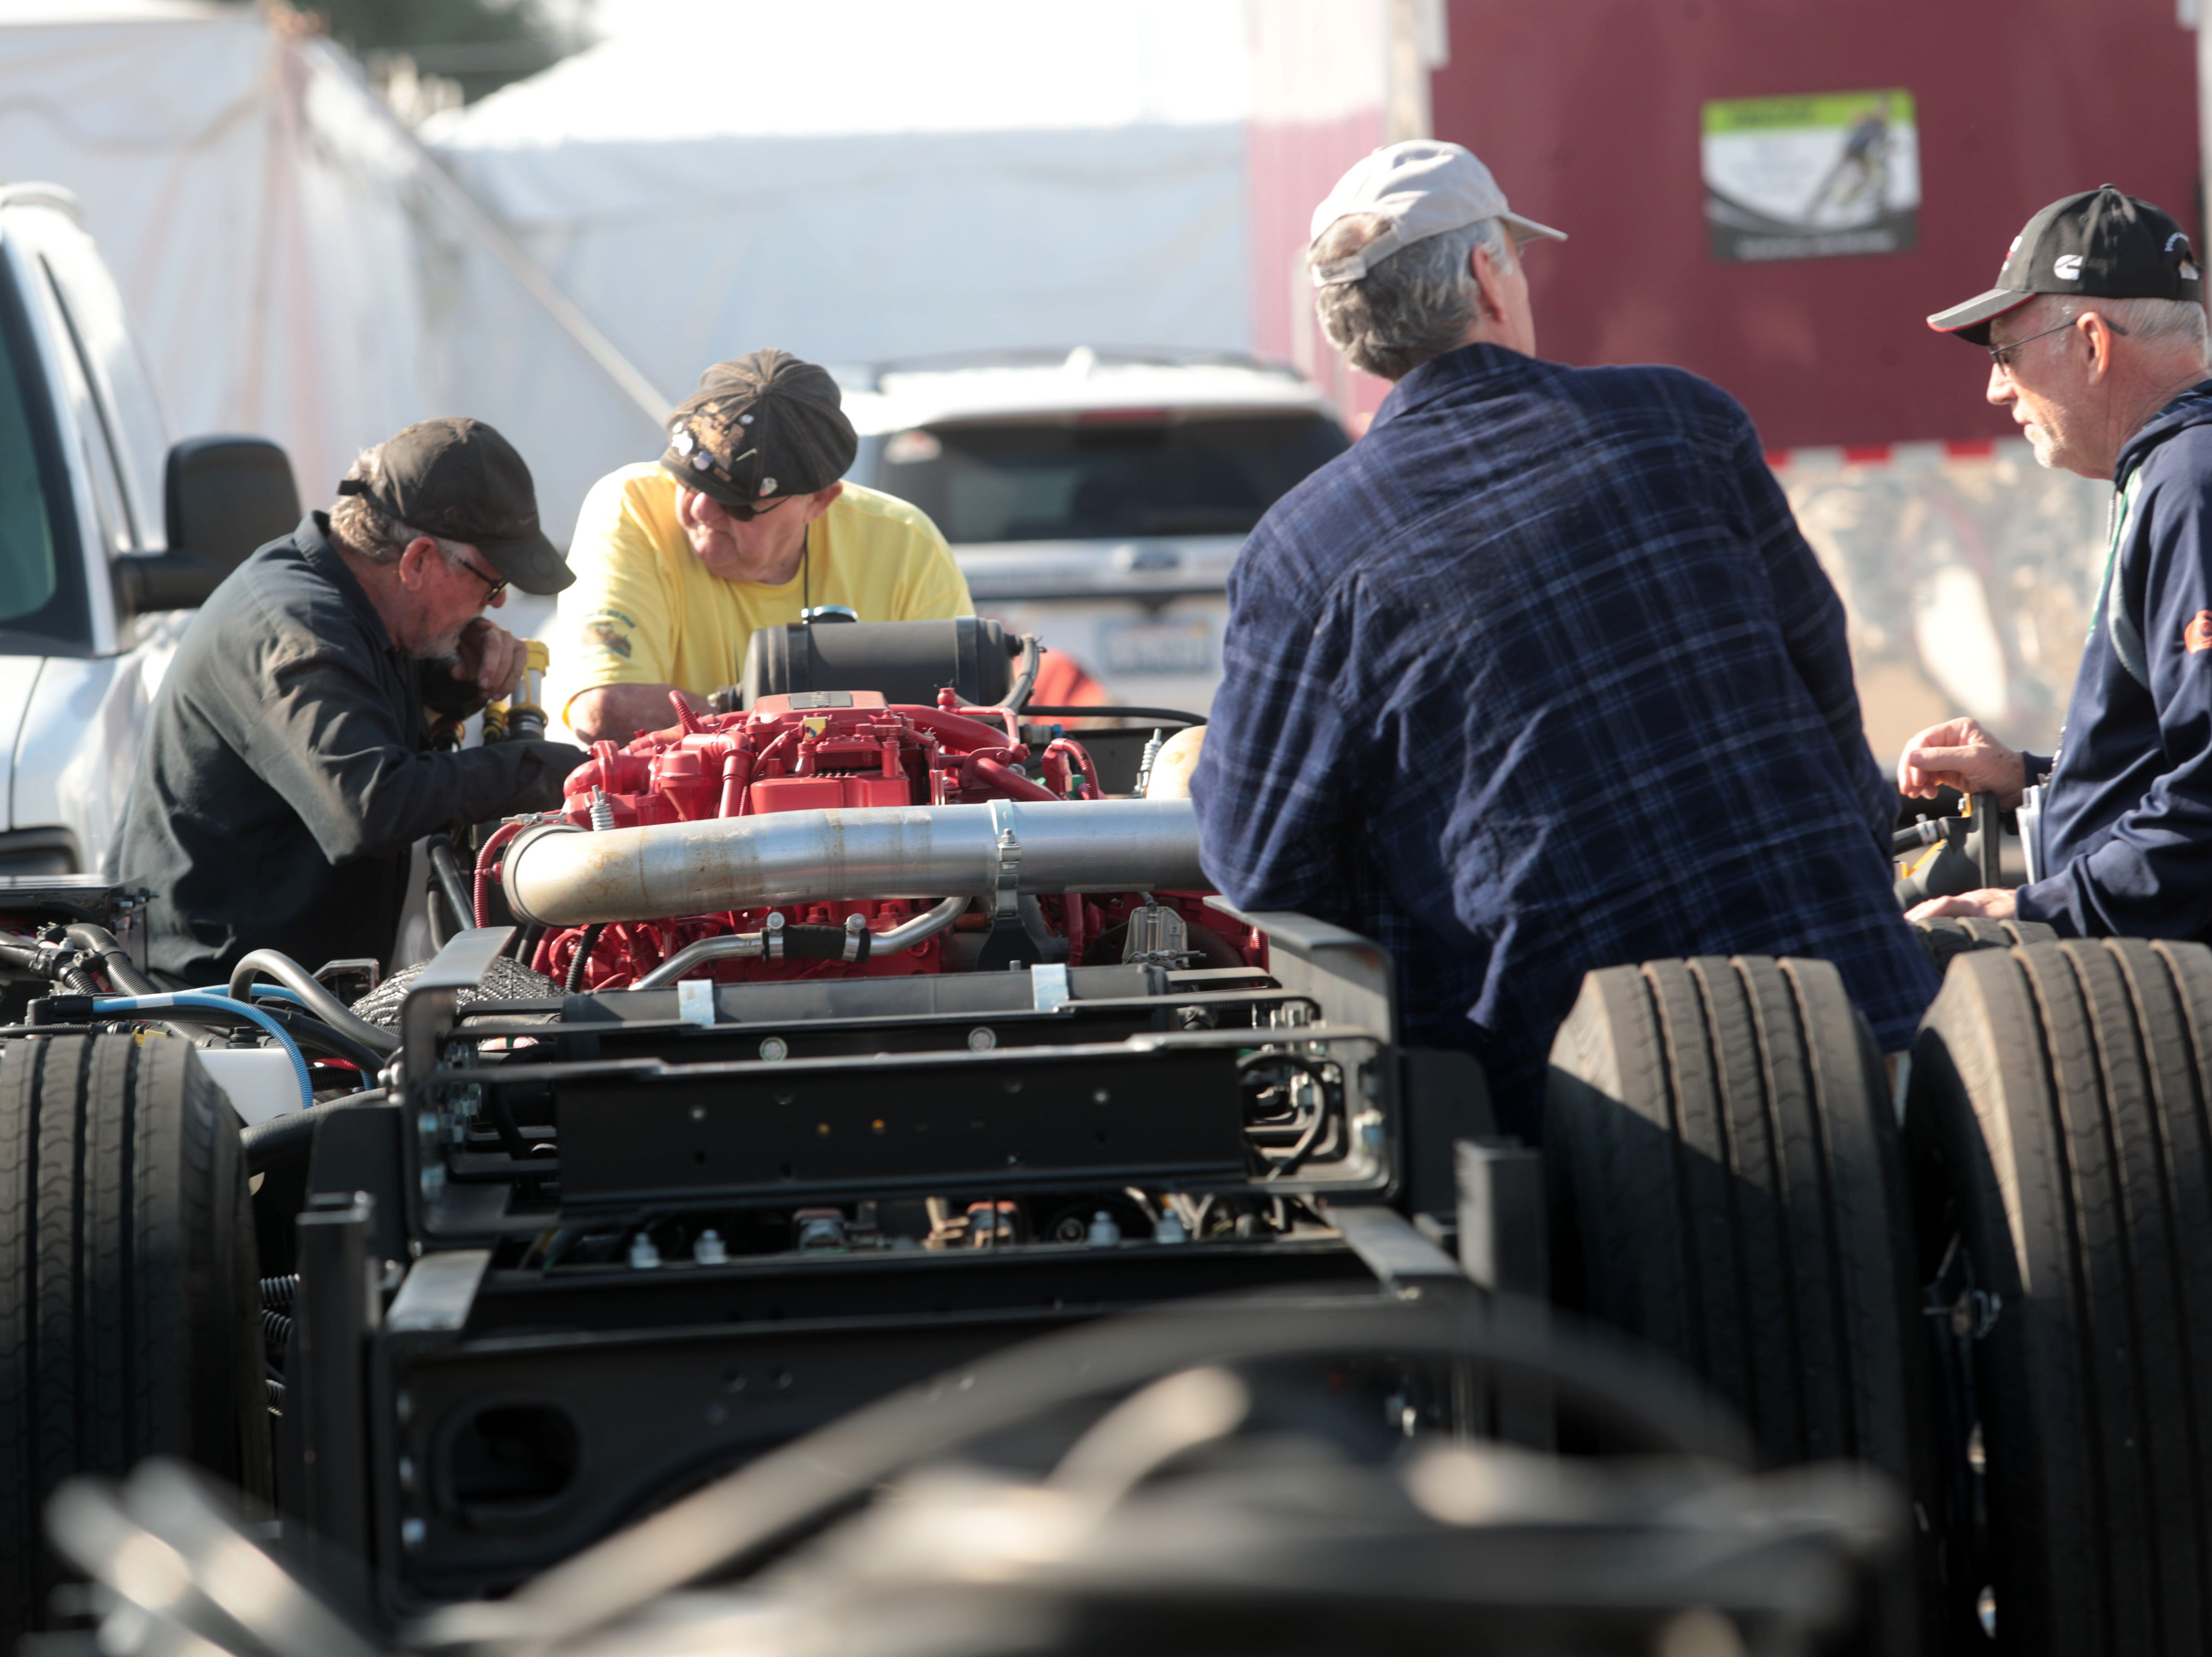 RVs owners talk engines at Riverside County Fairgrounds in Indio on Saturday, January 12, 2019, during the FMCA annual motorhome convention.